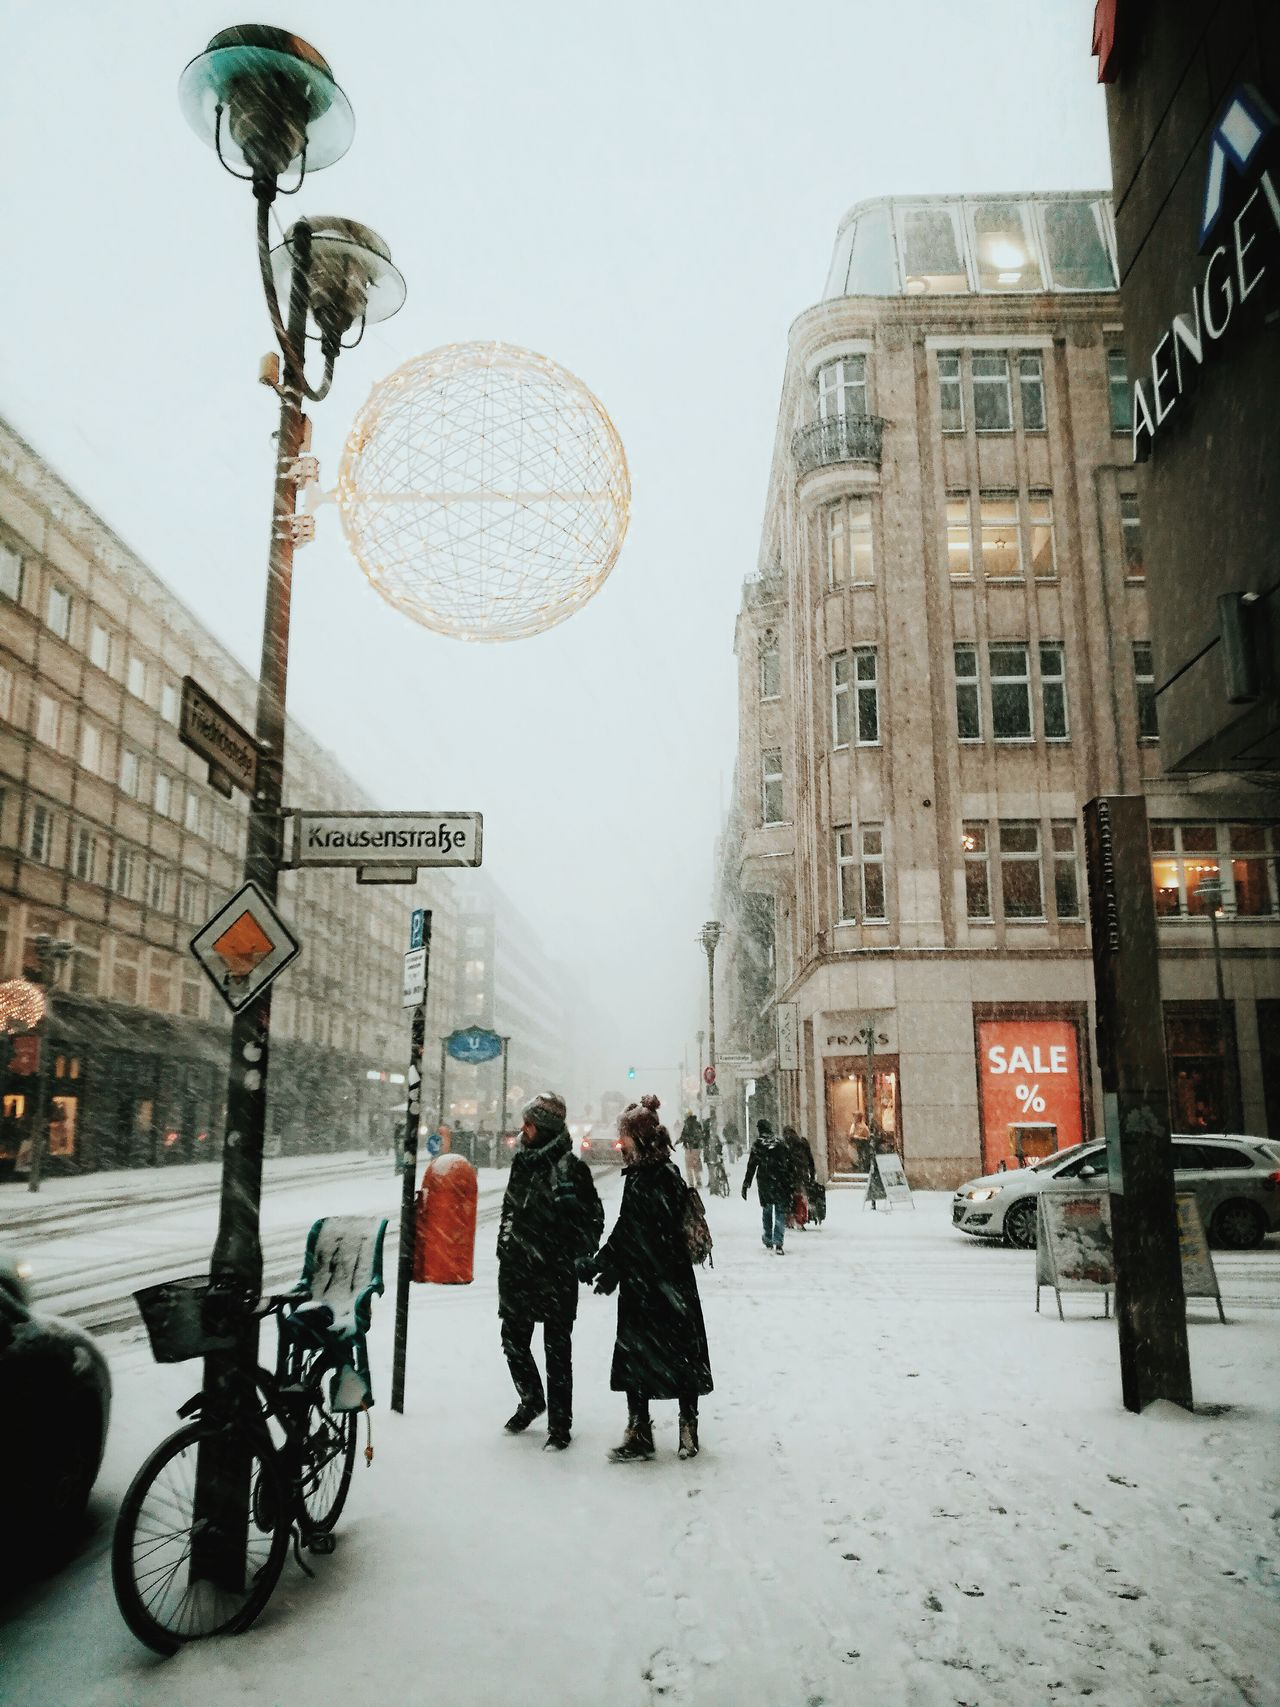 Snowcalypse in Berlin... City Outdoors Adults Only Snowing Huawei P9 Leica Streets Of Berlin Cold Temperature Huaweiphotography Crossing The Street Built Structure Streetphoto_color Streetscene Streetphotography Urban Lifestyle Togetherness Snow Real People Urban Winter Winter Wonderland